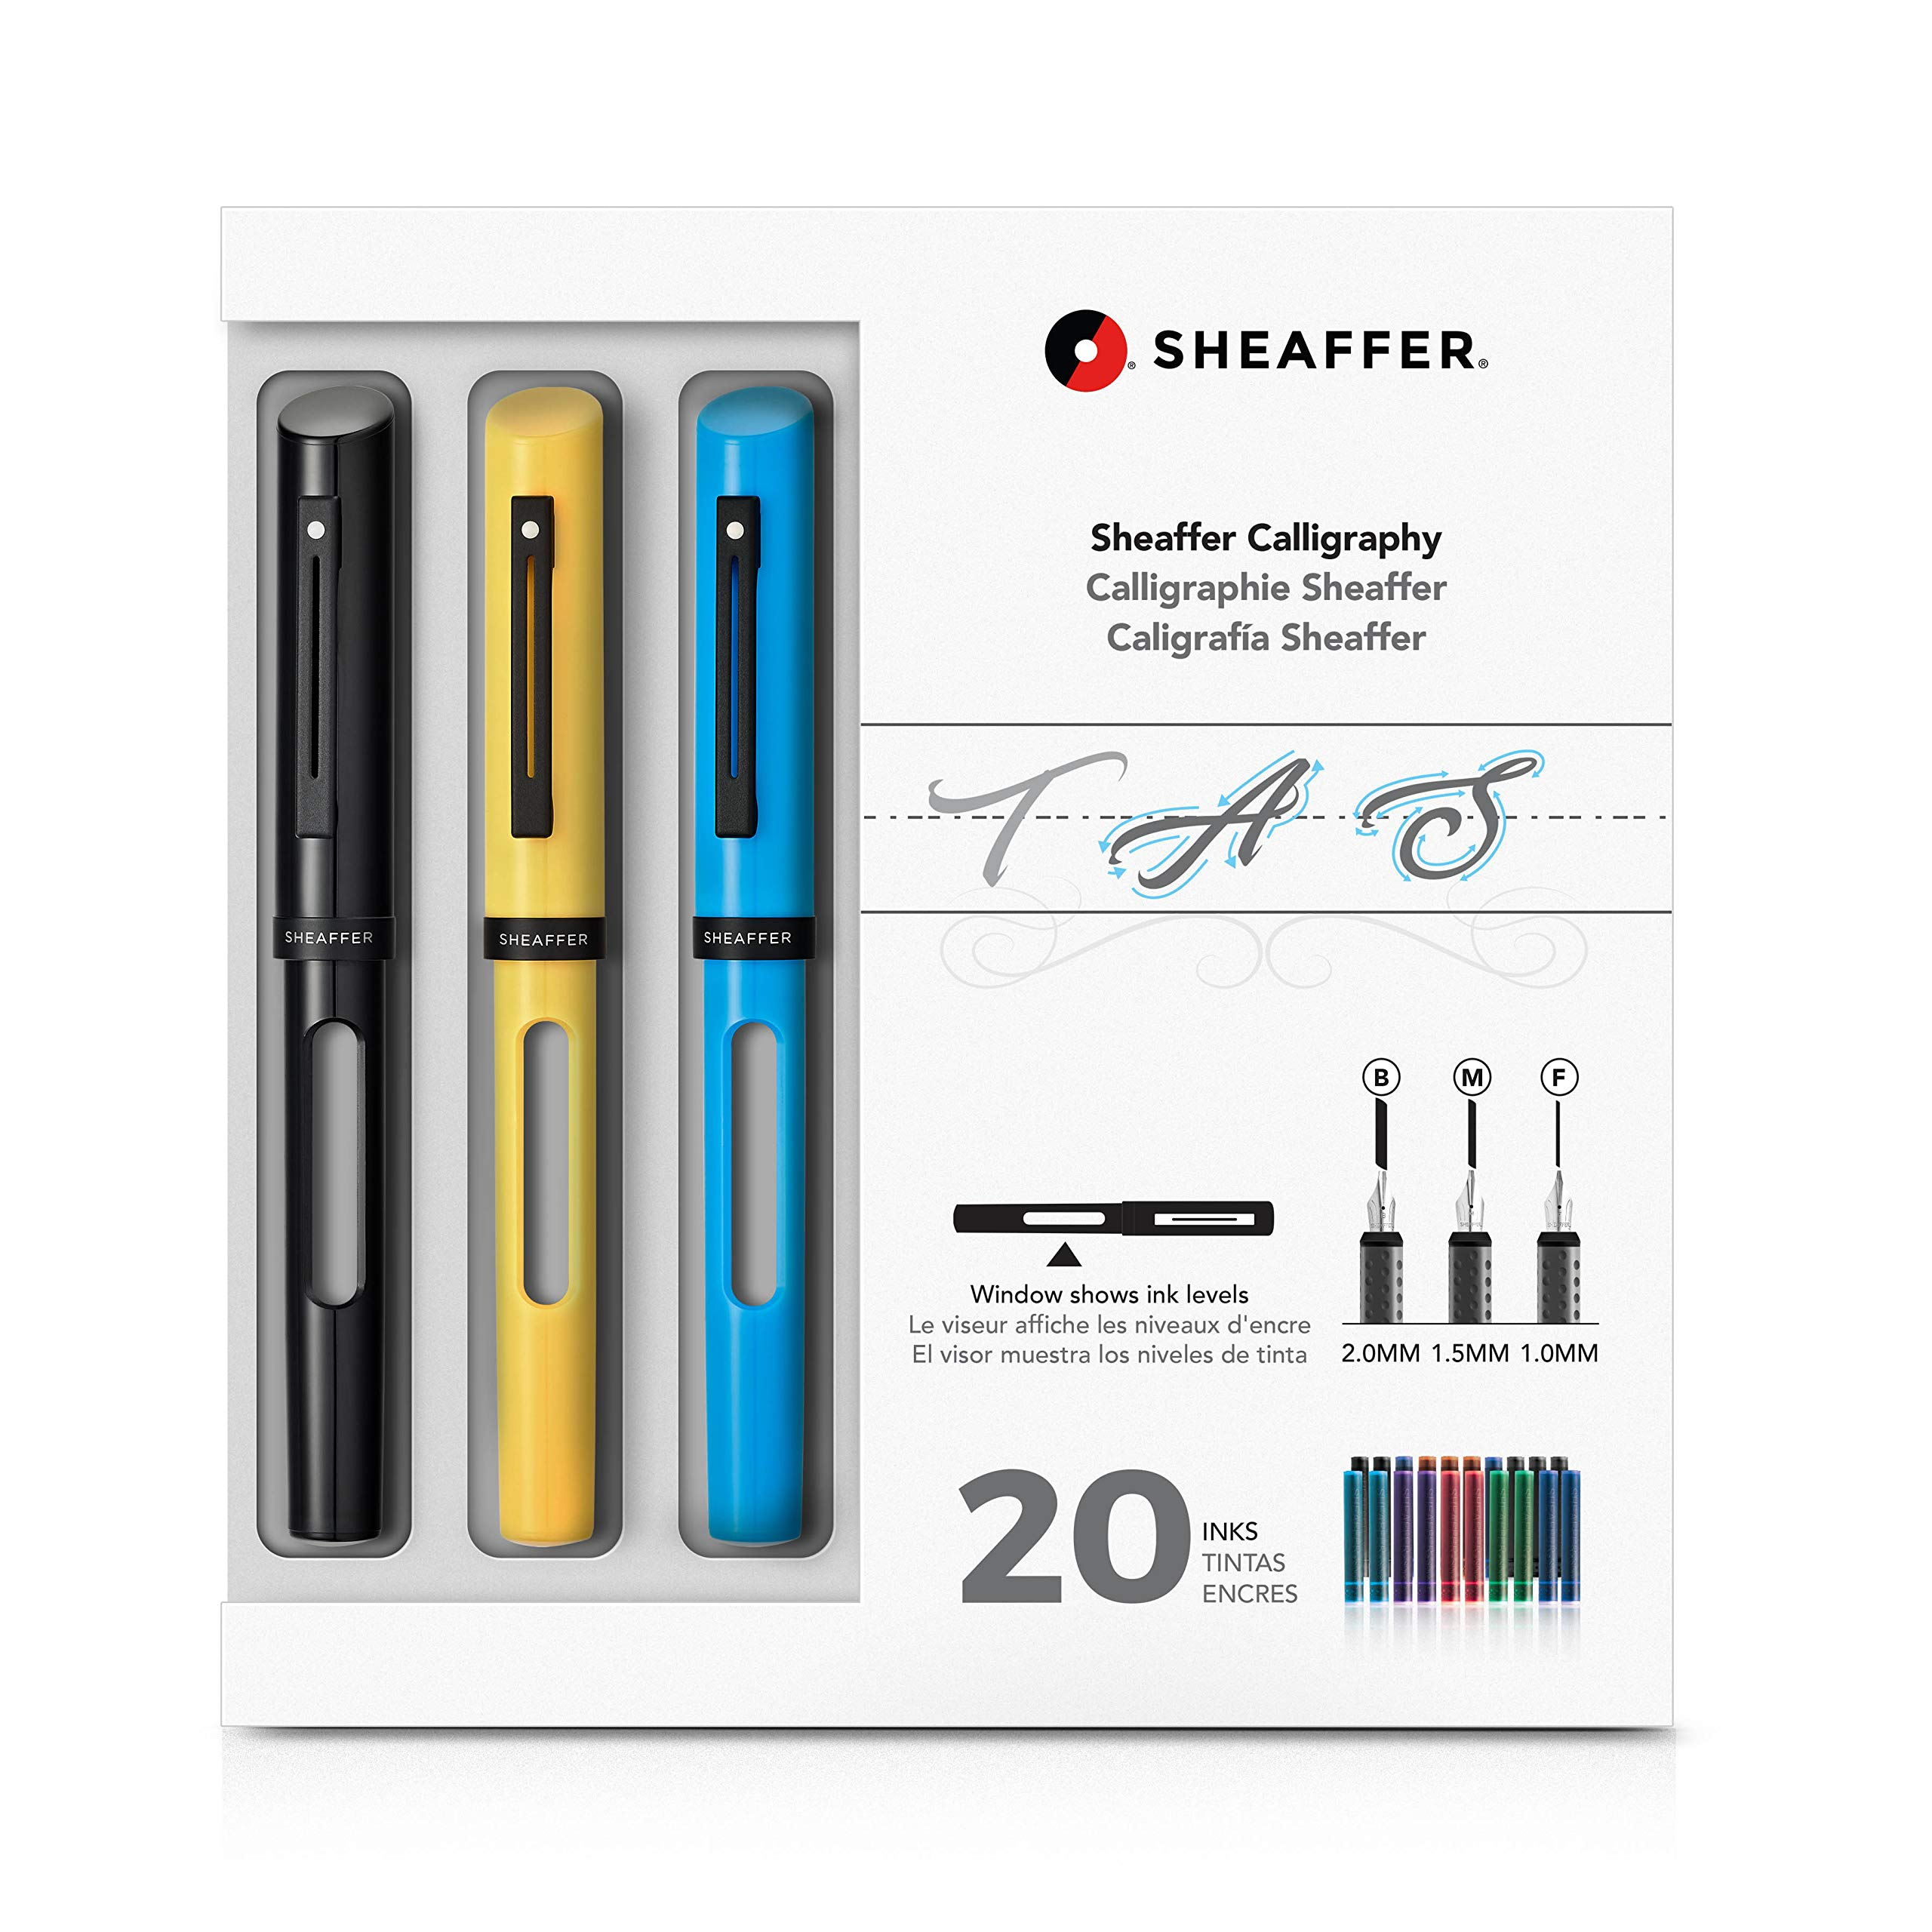 Sheaffer Calligraphy Maxi Kit with Black, Yellow, and Blue Pens and Assorted Nibs and Inks by Sheaffer